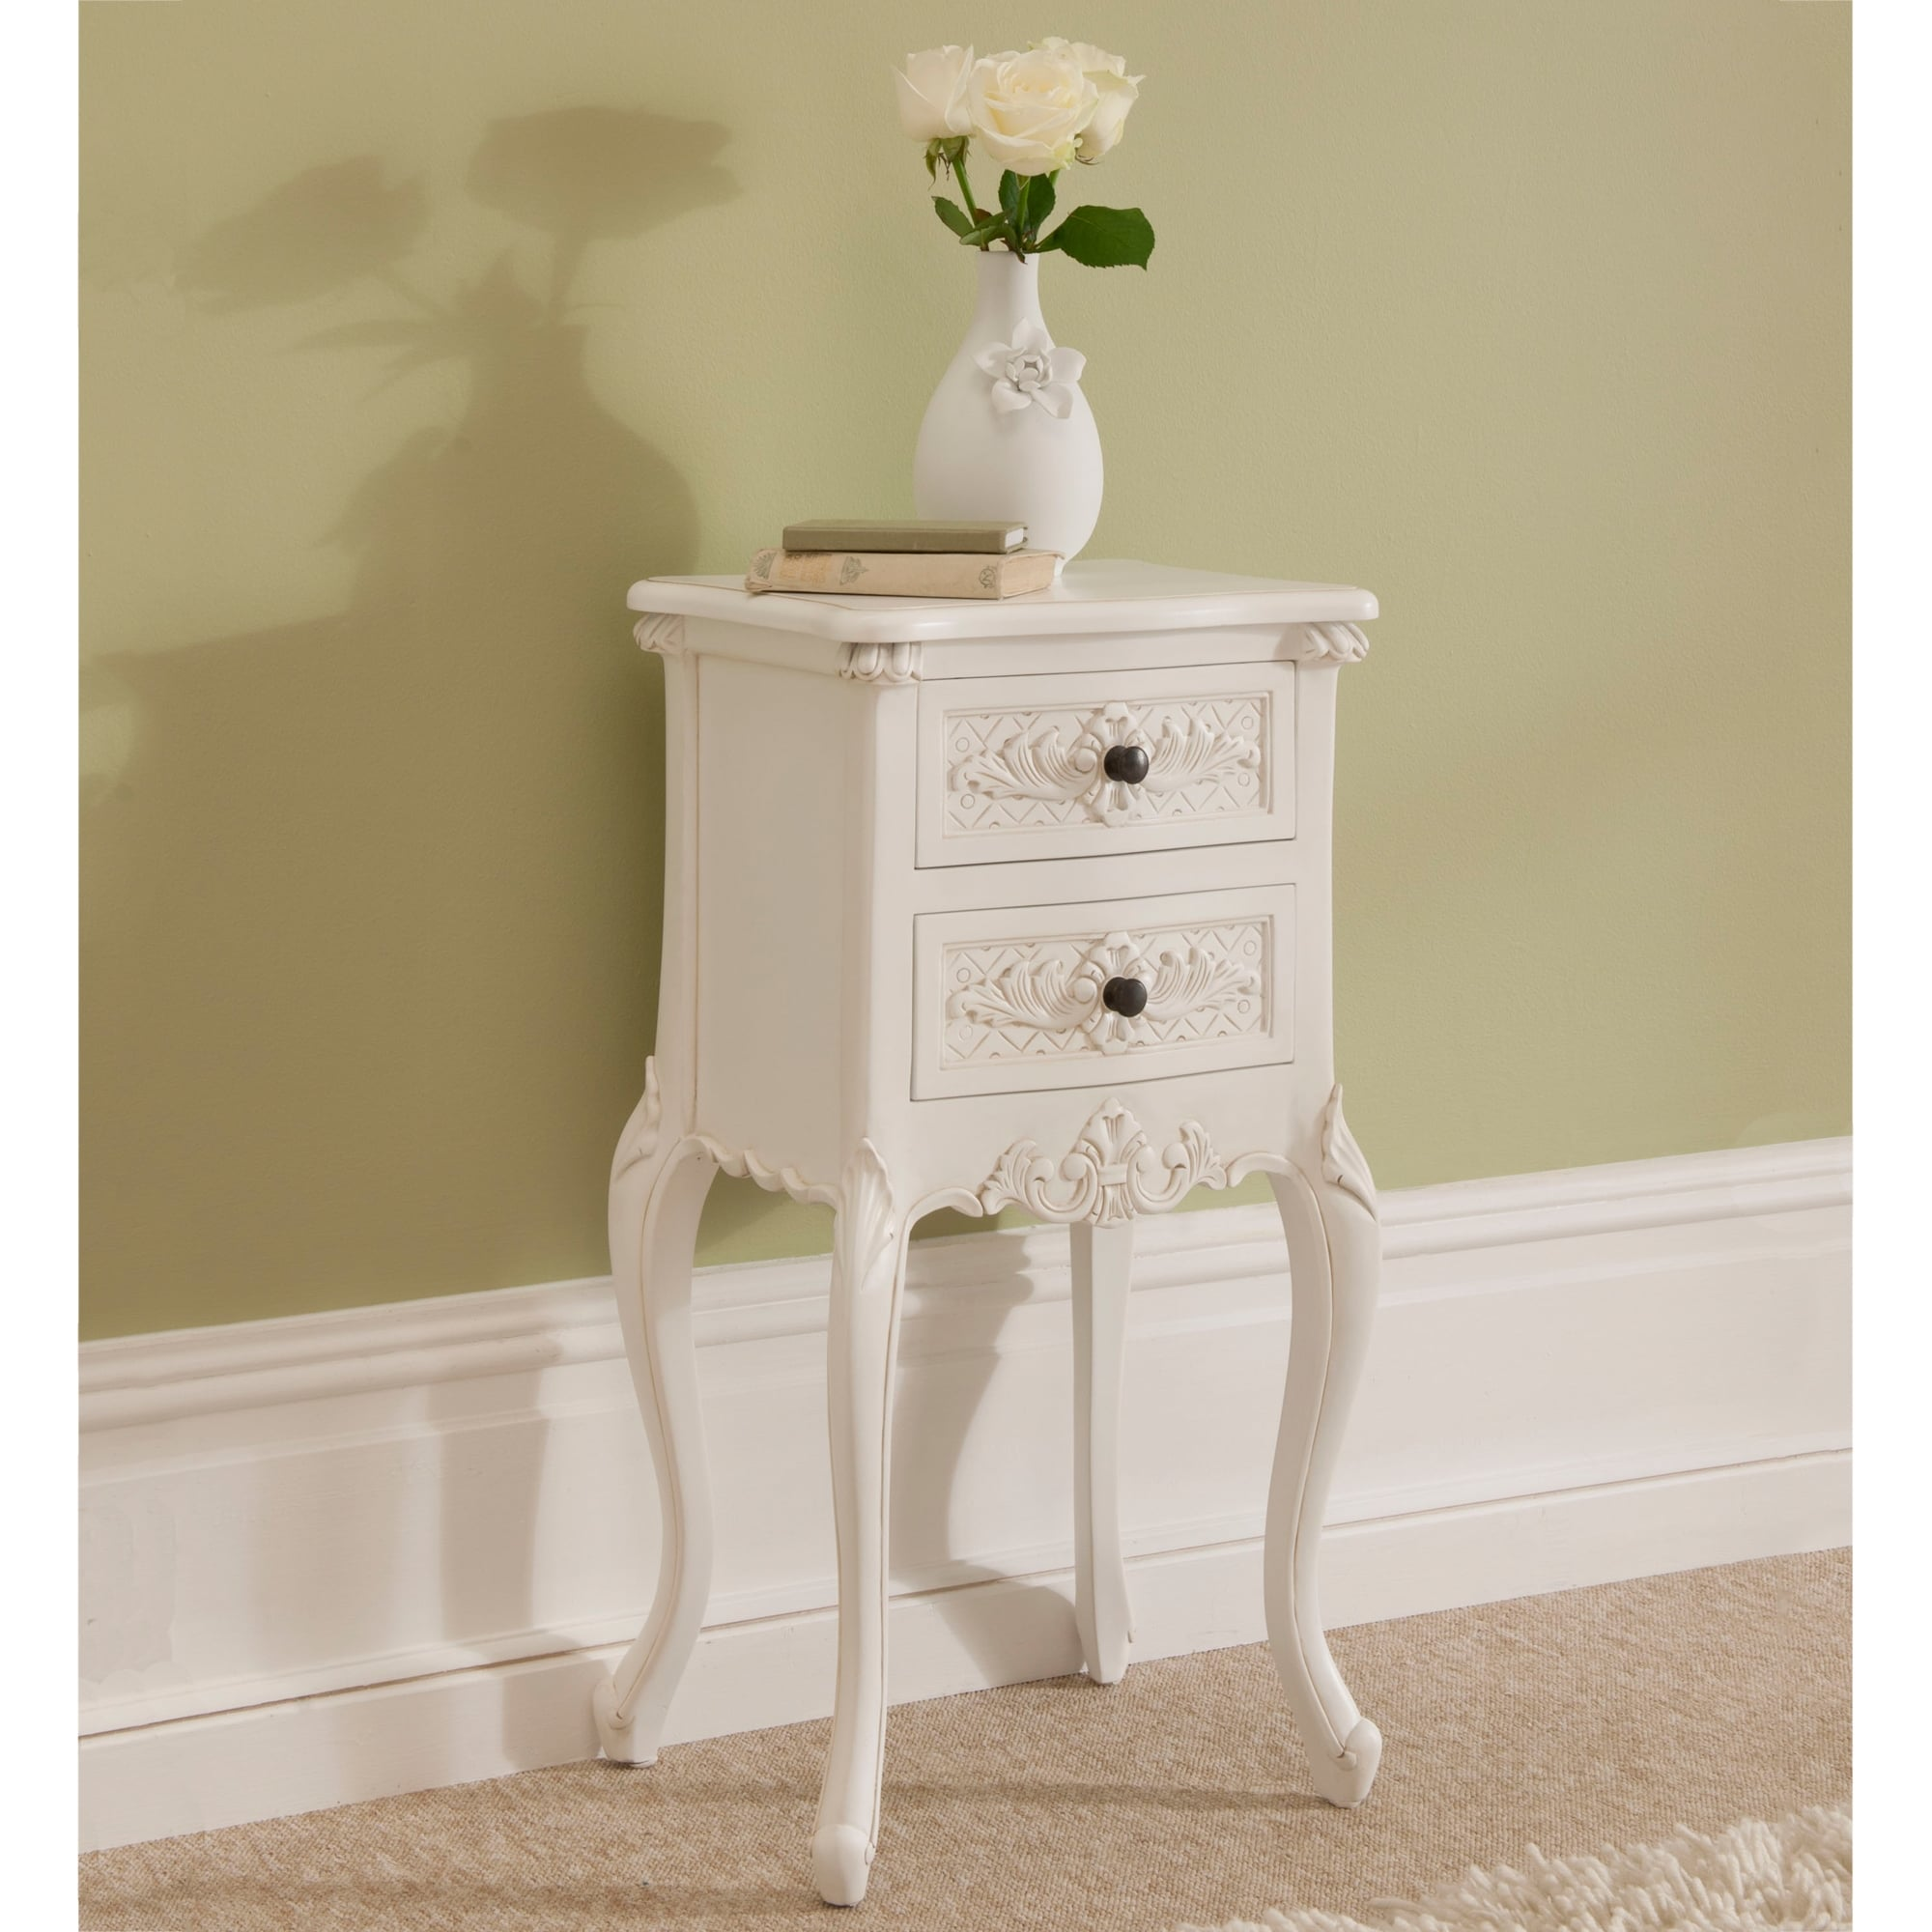 Rococo antique french bedside to compliment our shabby chic furniture - Shabby shic furniture ...